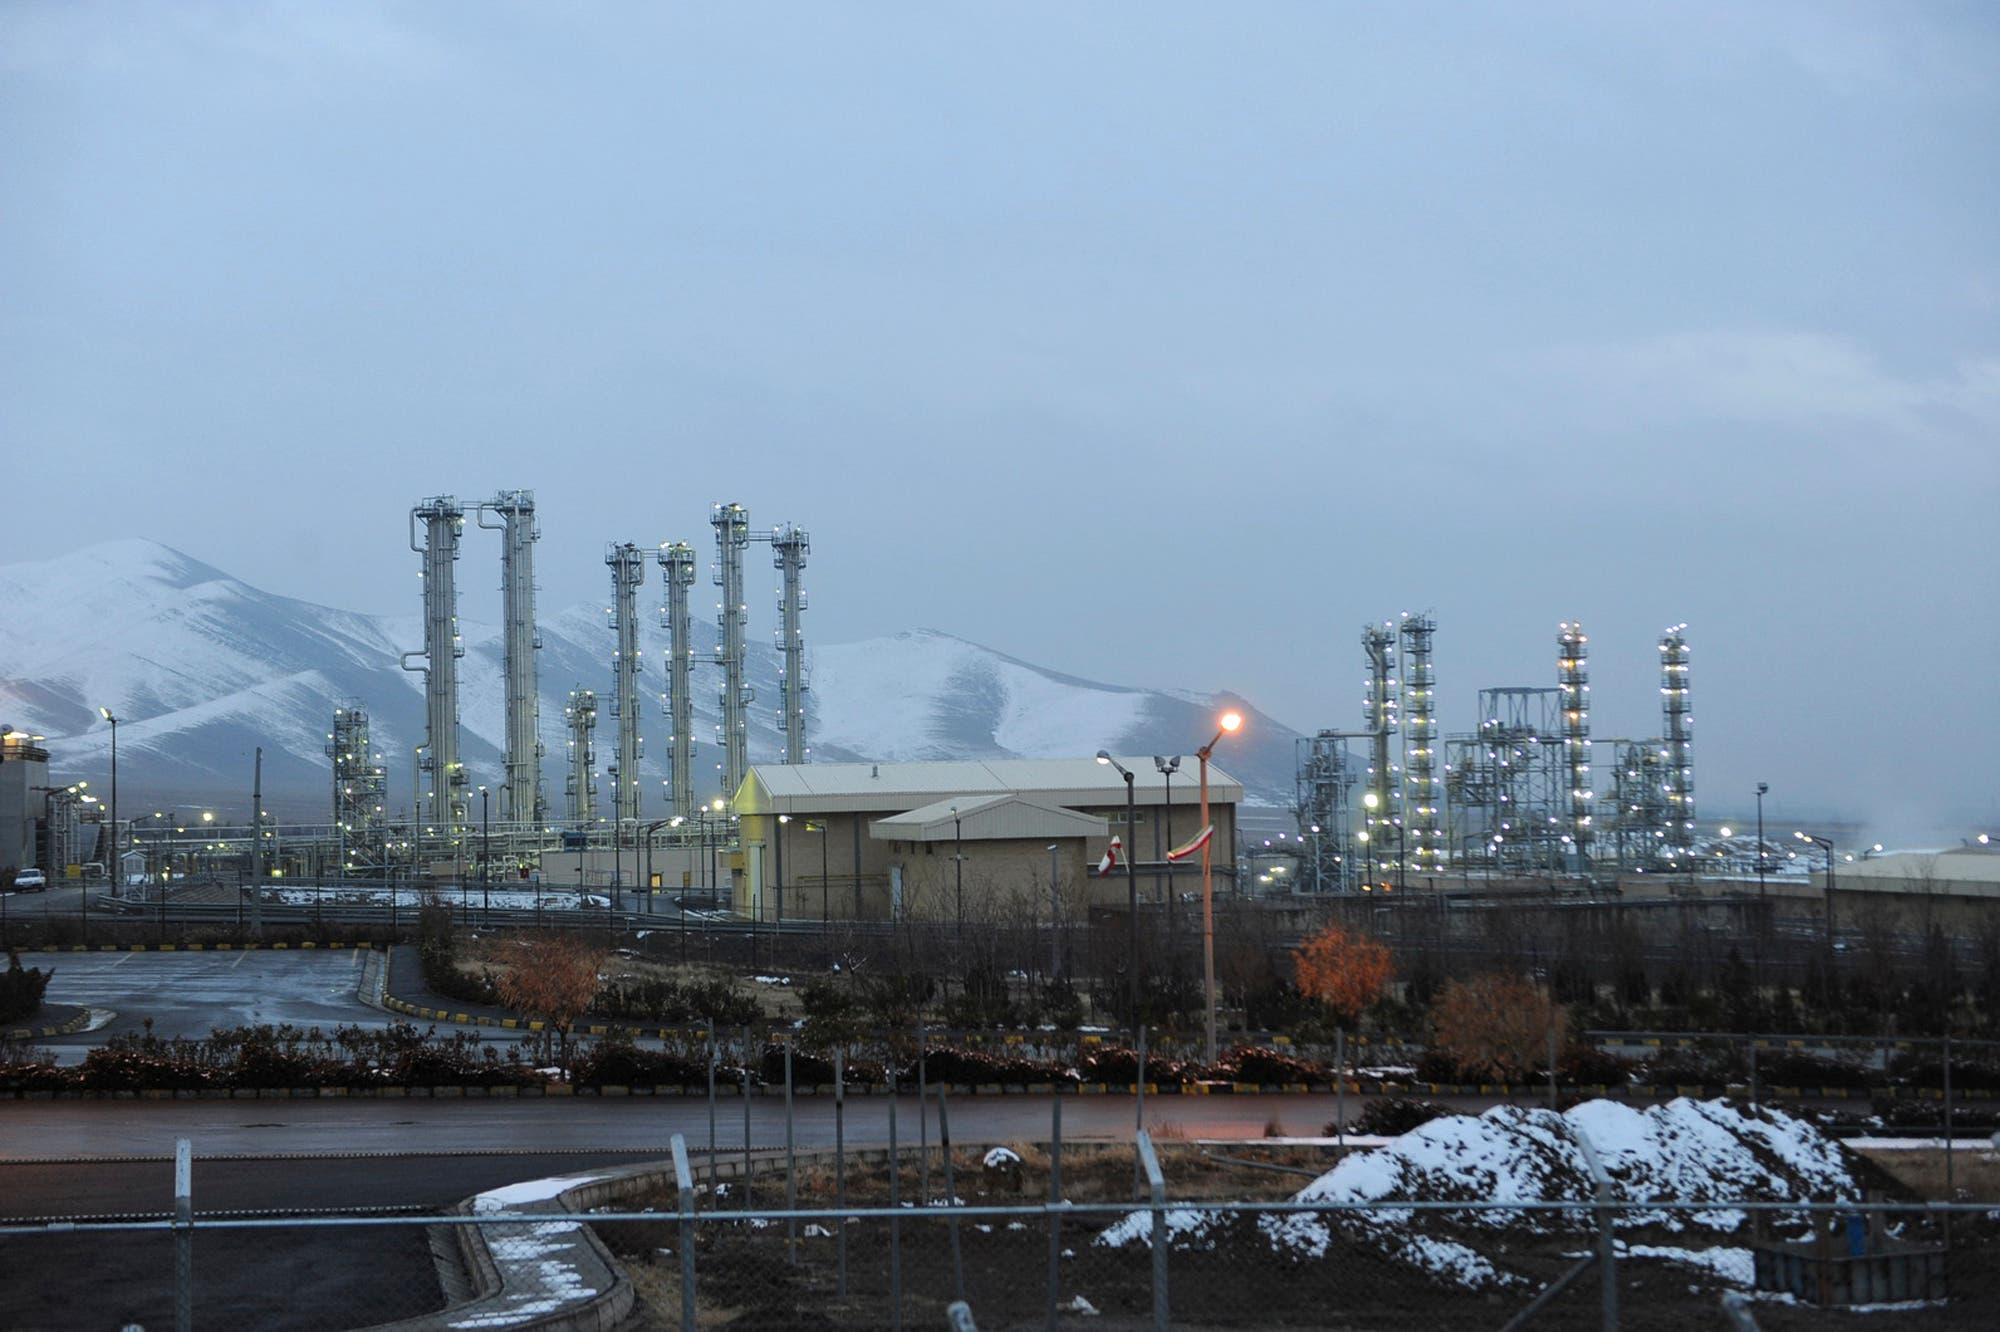 This Jan. 15, 2011 file photo shows the heavy water nuclear facility near Arak, 150 miles (250 kilometers) southwest of the capital Tehran, Iran. (AP)